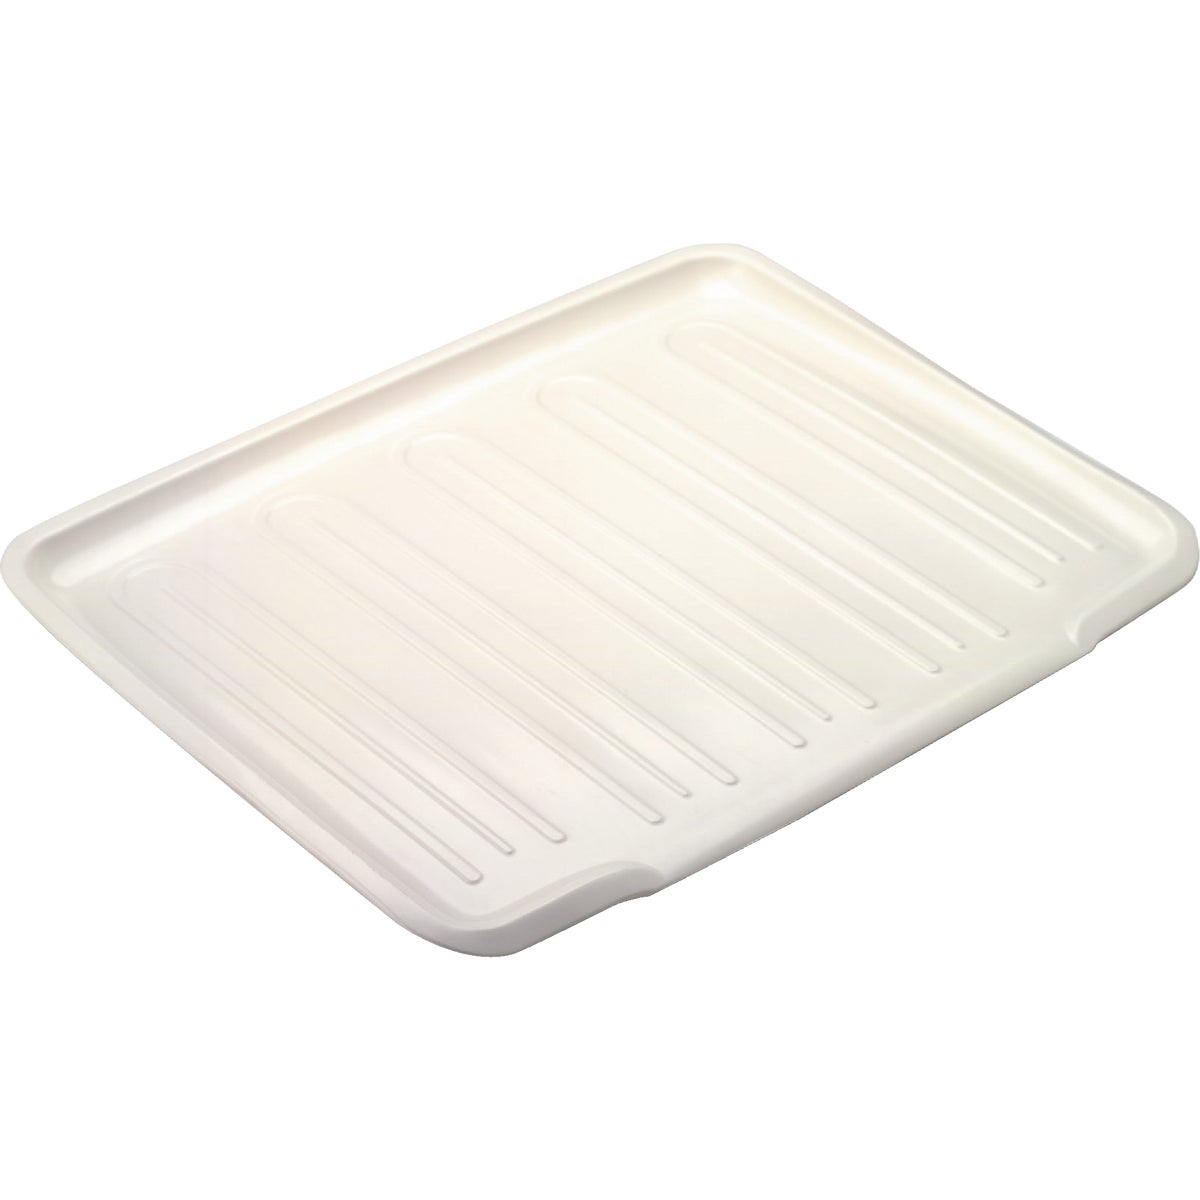 LRG BISQUE DRAINER TRAY - 1182MABISQU by Rubbermaid Home